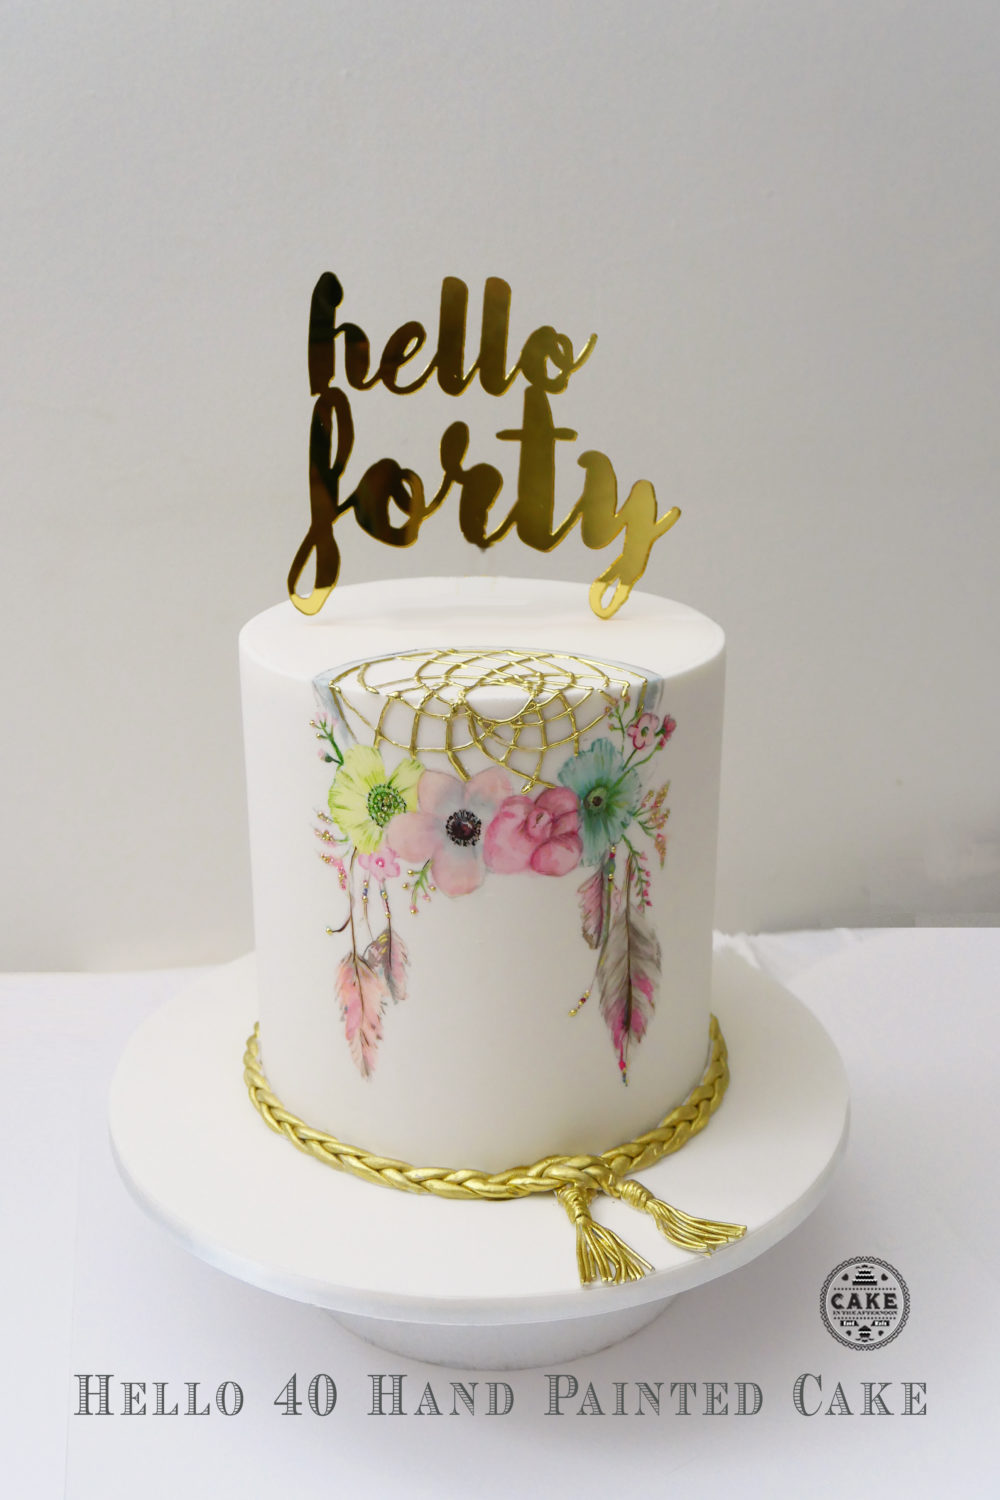 Cake Gift Delivery Melbourne